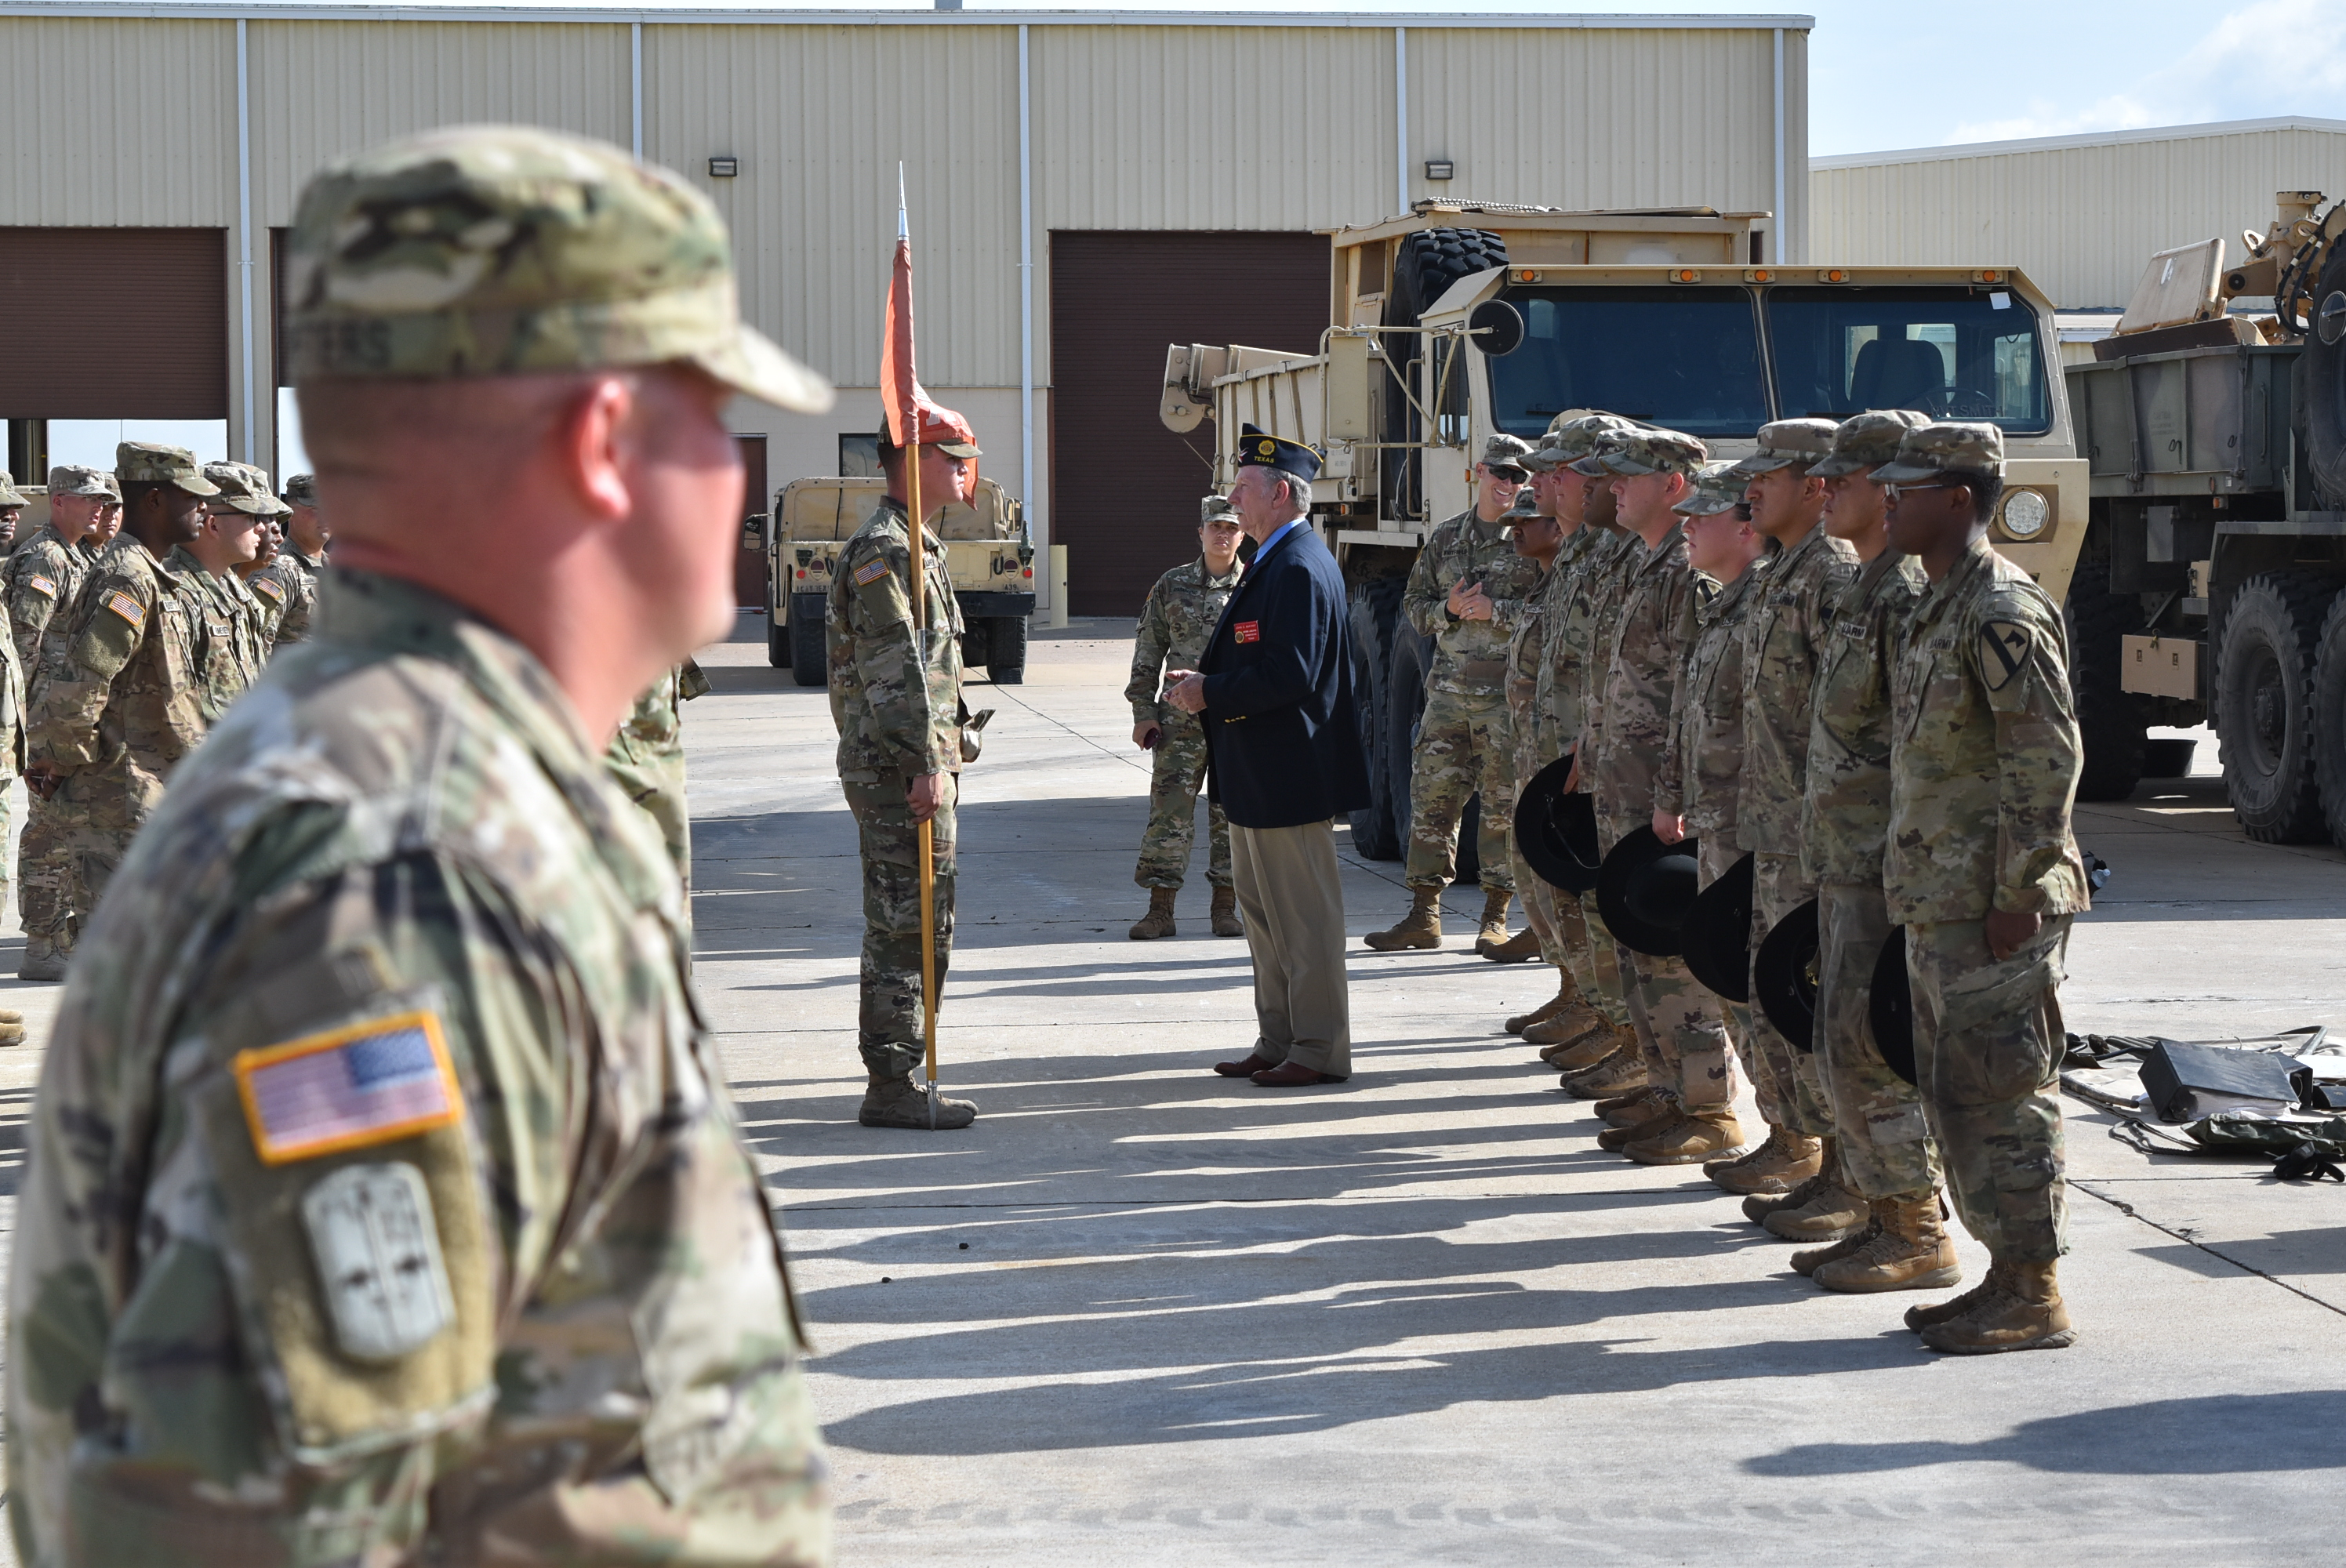 PHOTO: John McKinny with the American Legion - Department of Texas, speaks to soldiers with the 3rd Brigade Engineer Battalion of the 1st Cavalry Division.